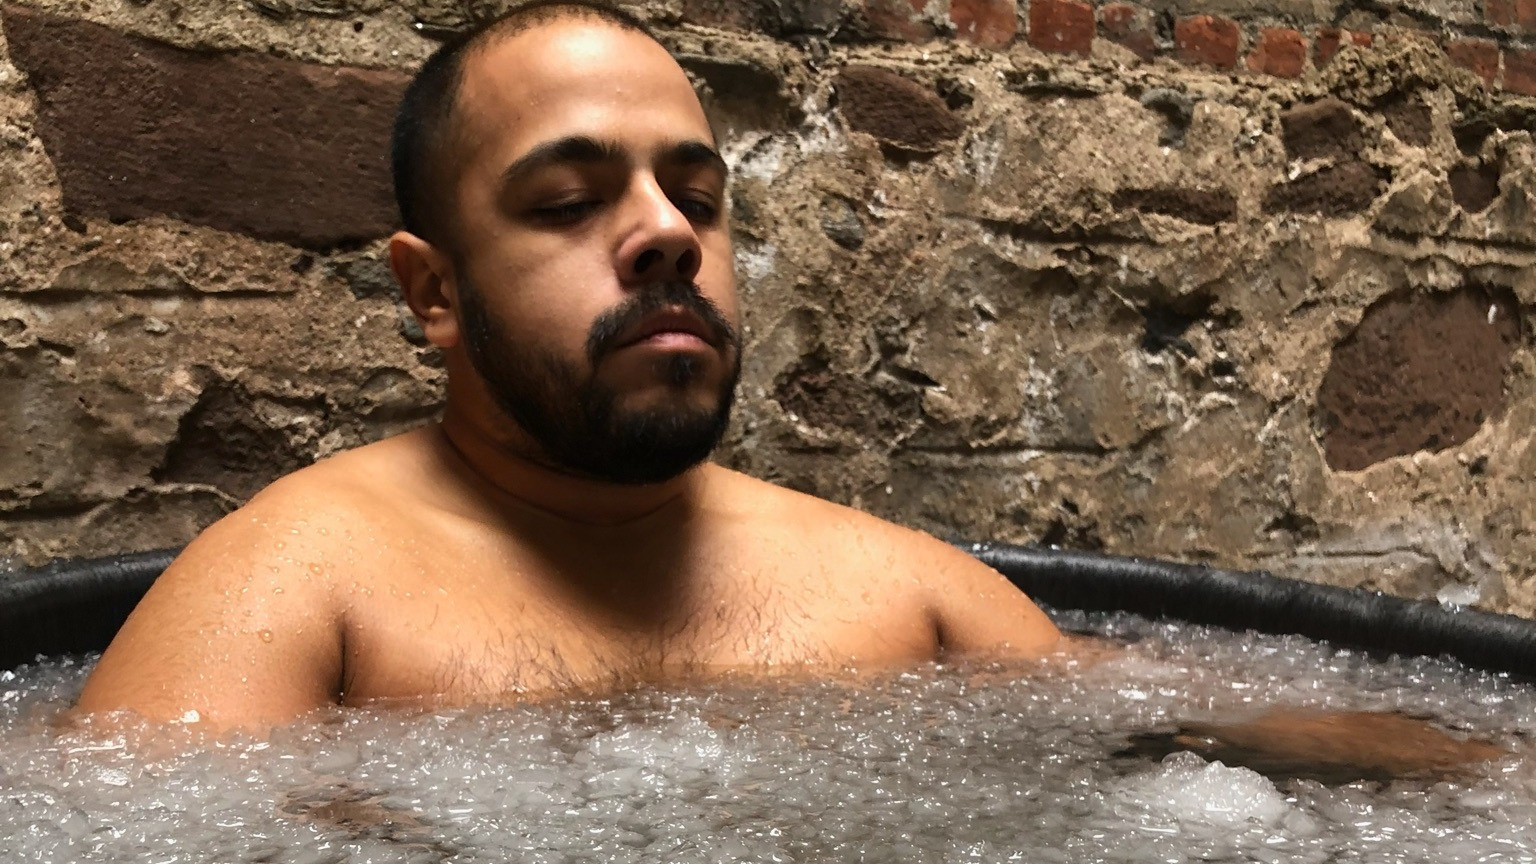 Image 8 of 9 - Experience the Wim Hof Method to get an impression of  at